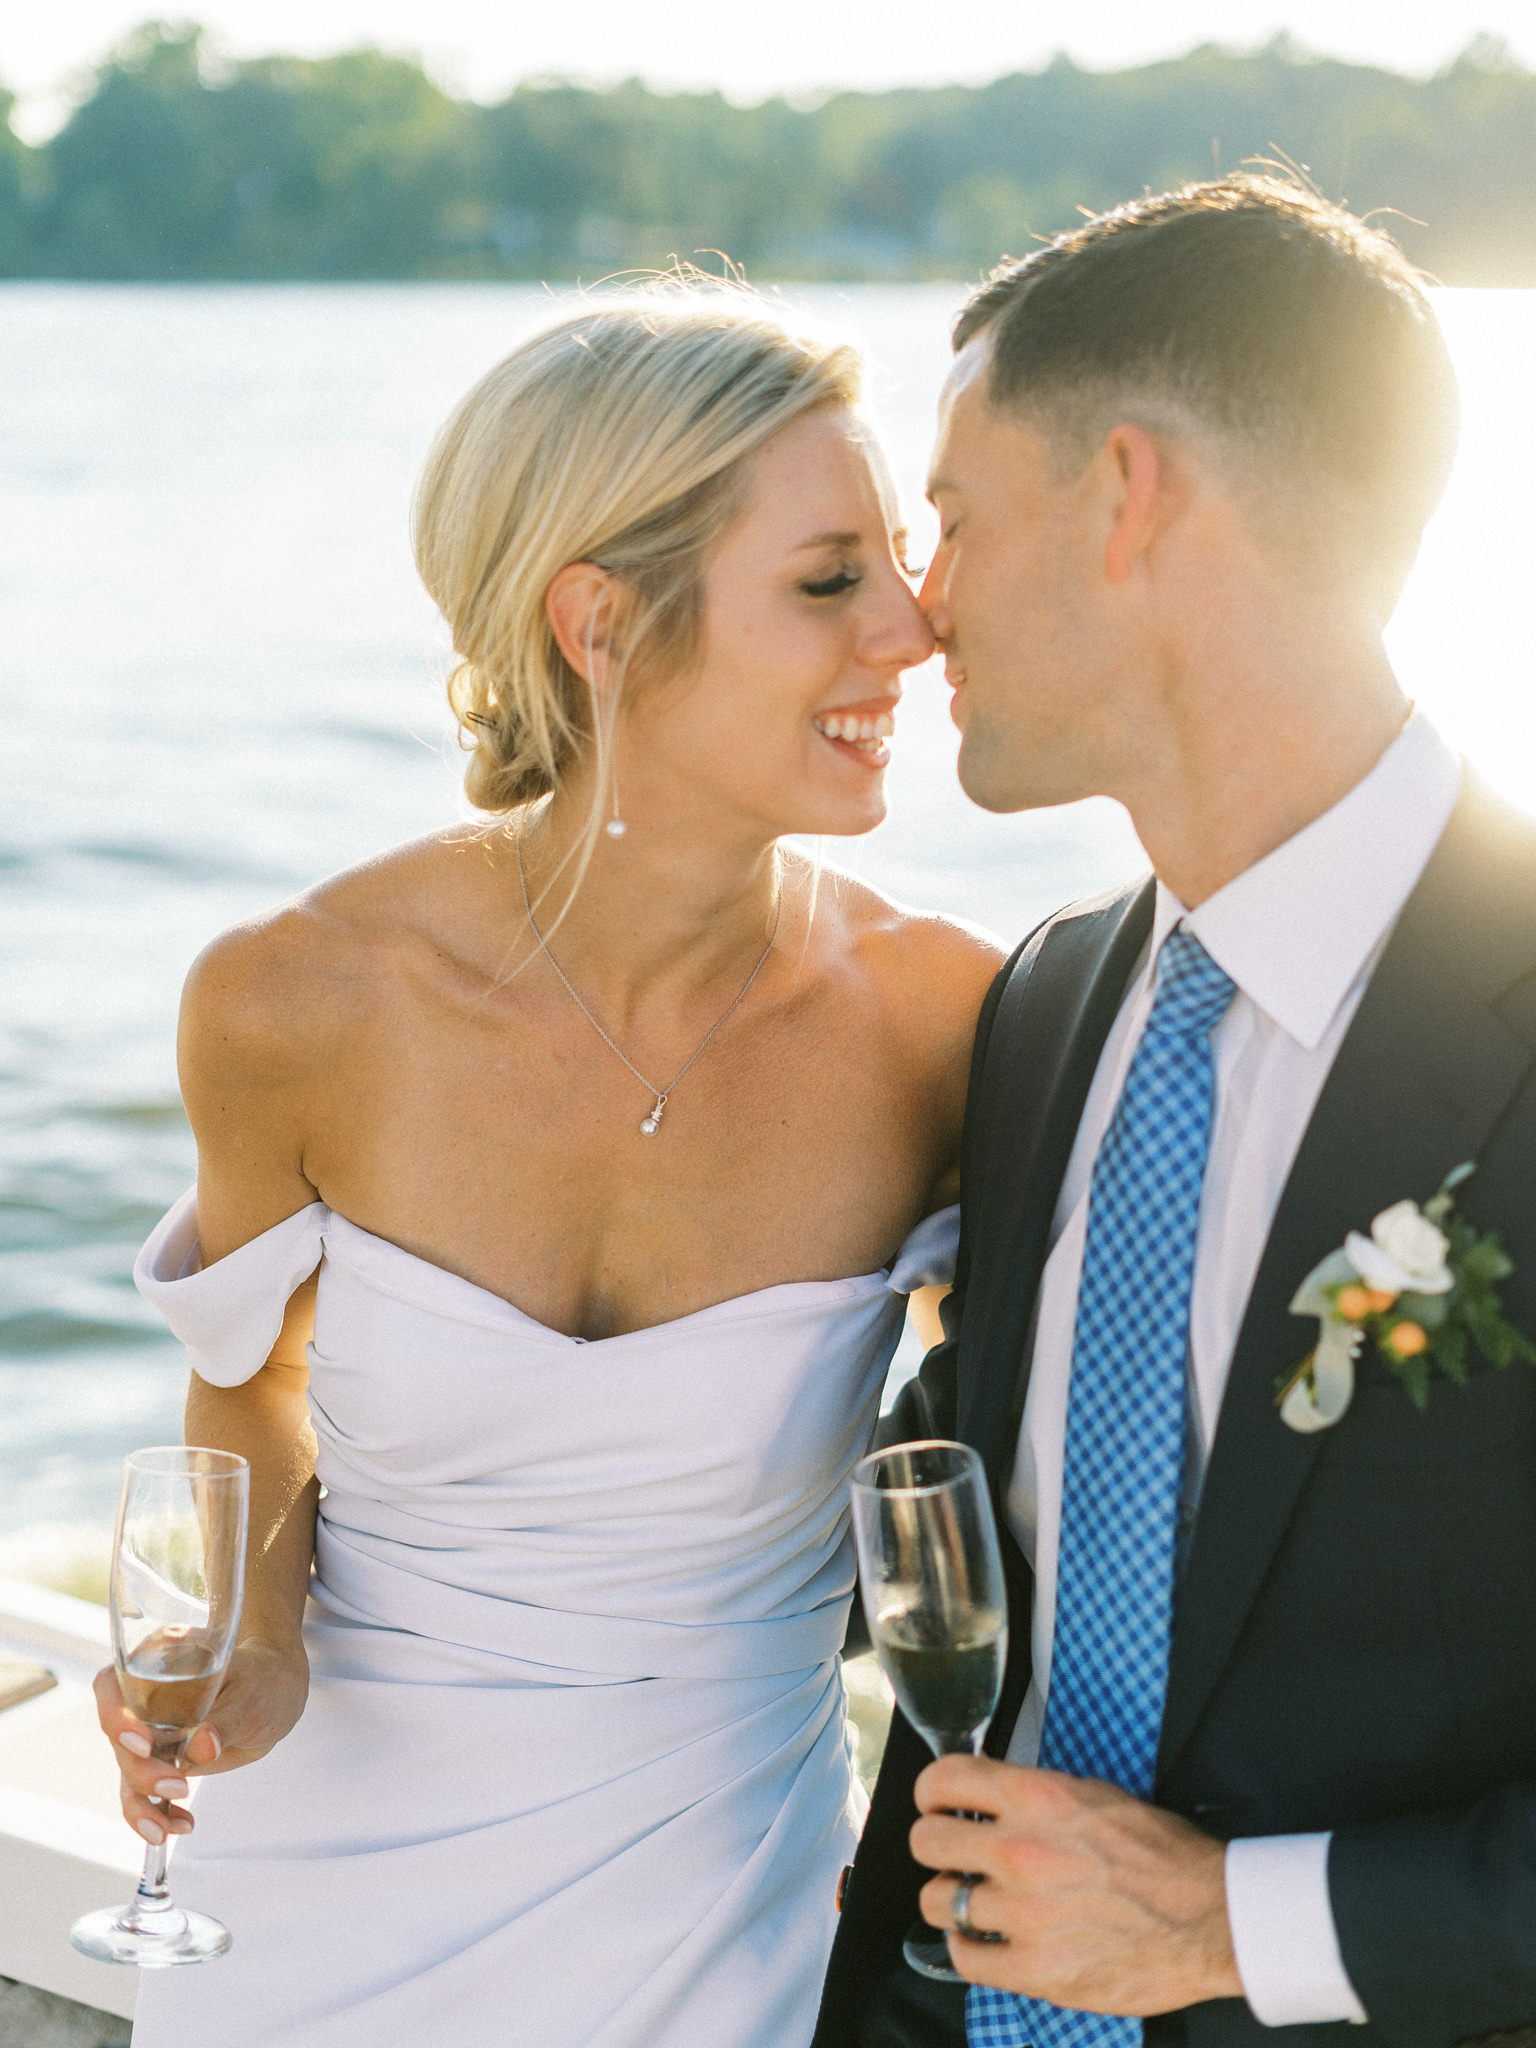 Gray_Joiner_e. losinio photography_annapolis-maryland-waterfront-elopement-404